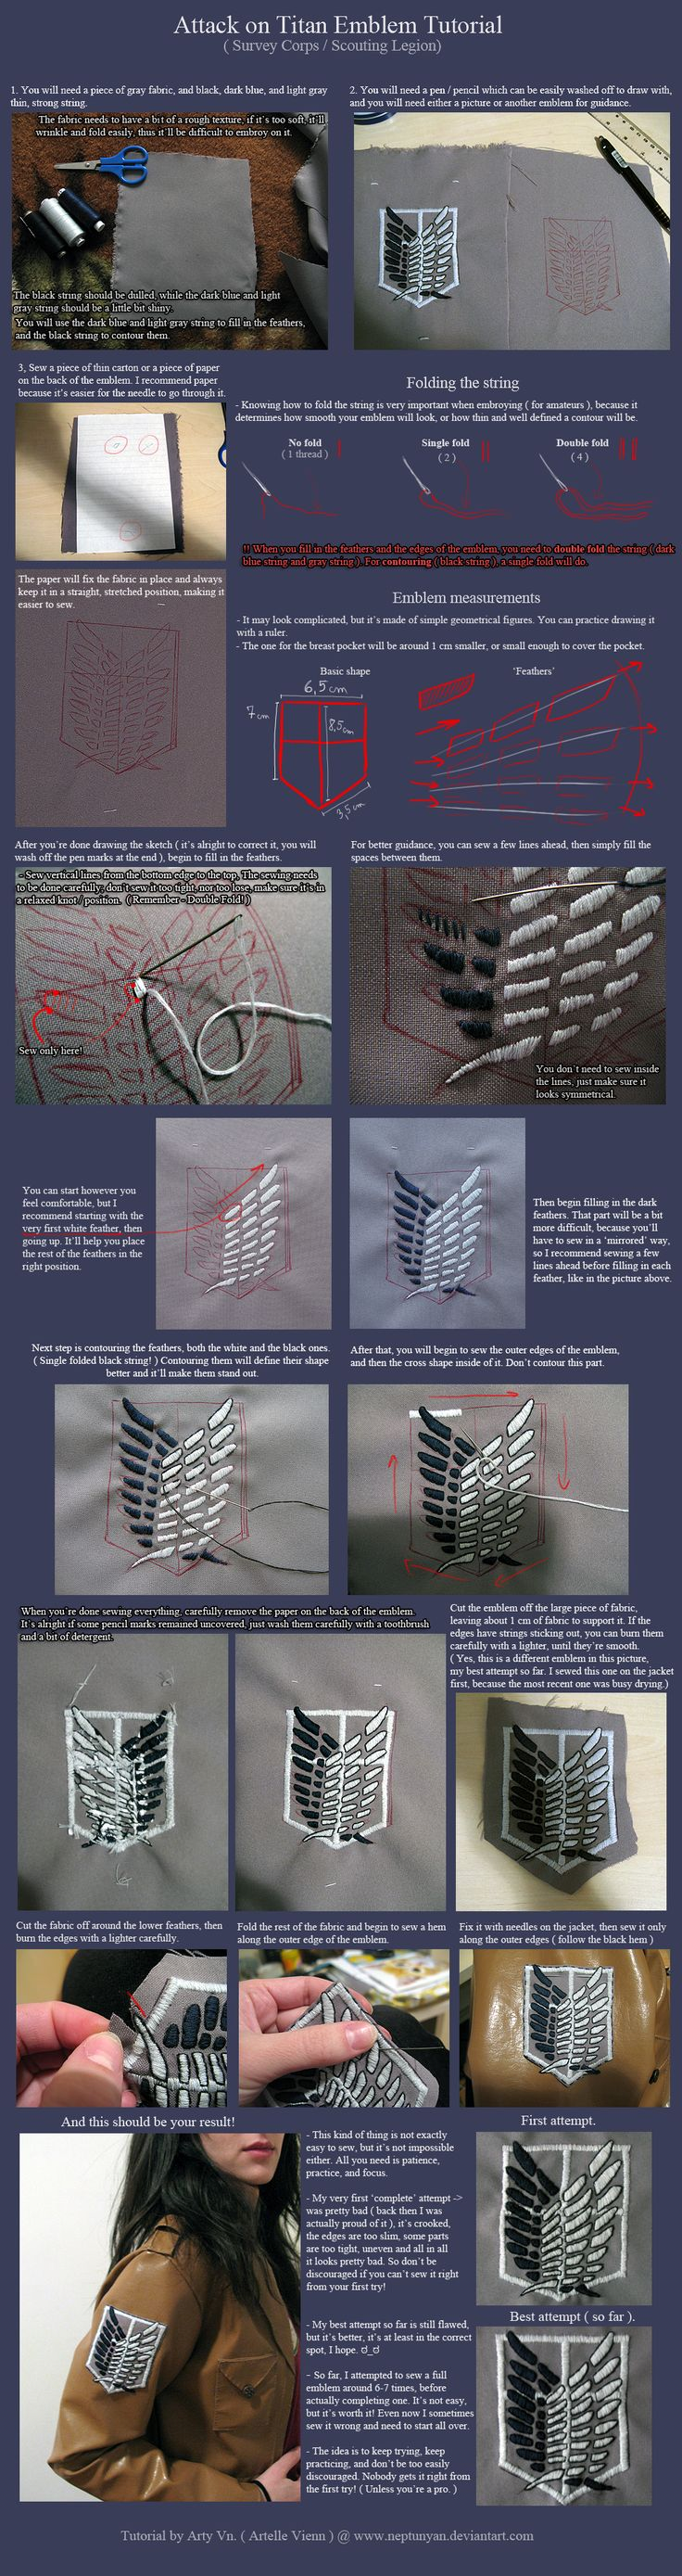 Attack on Titan Emblem Tutorial - Survey Corps. by neptunyan on deviantART